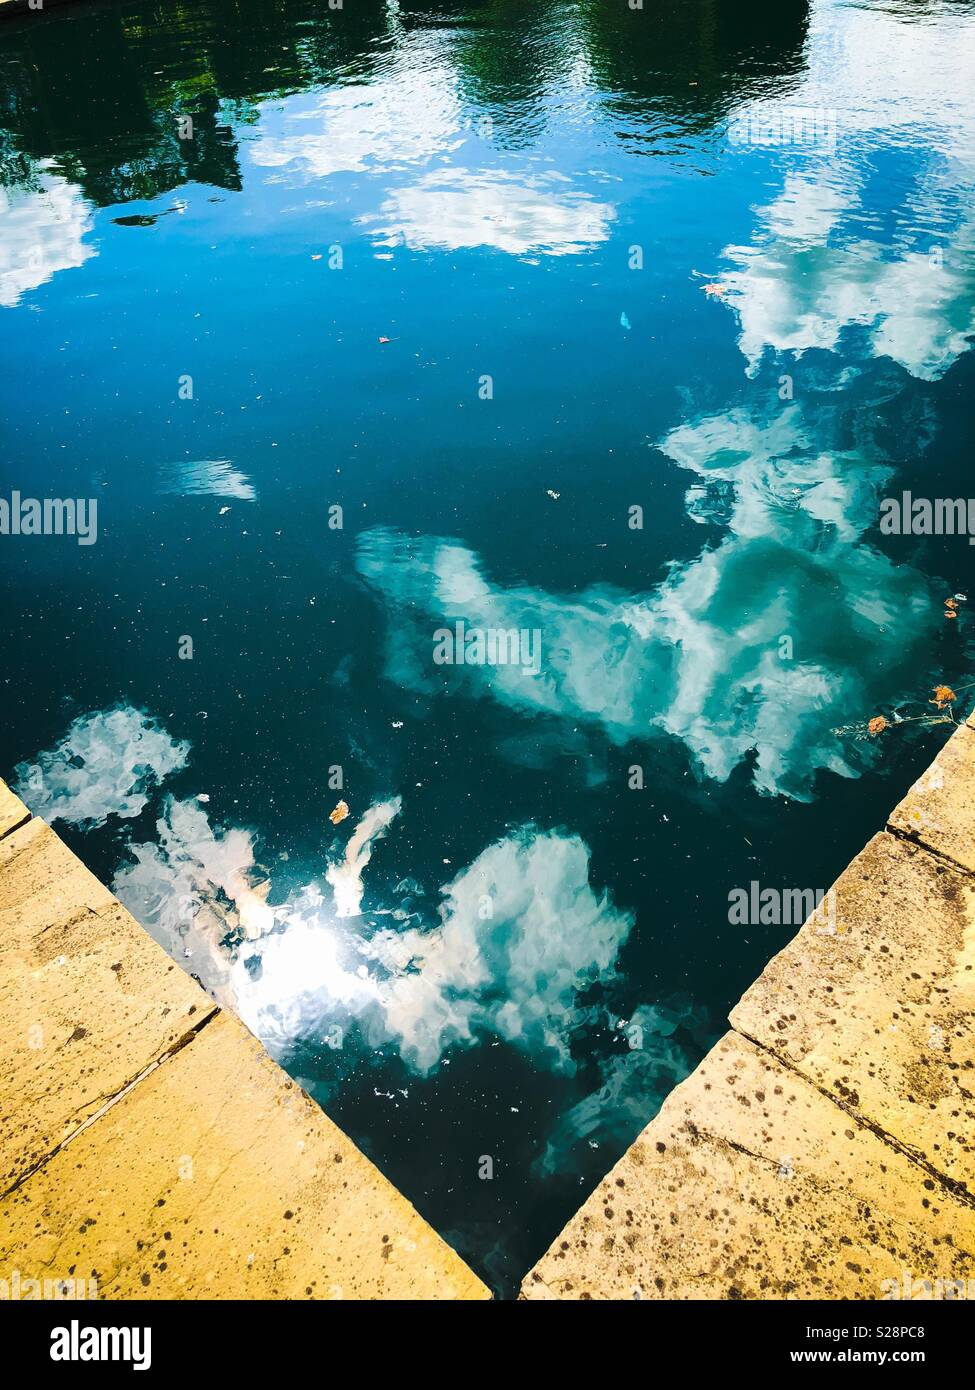 Clouds and blue sky reflections in a stone-edged pool - Stock Image